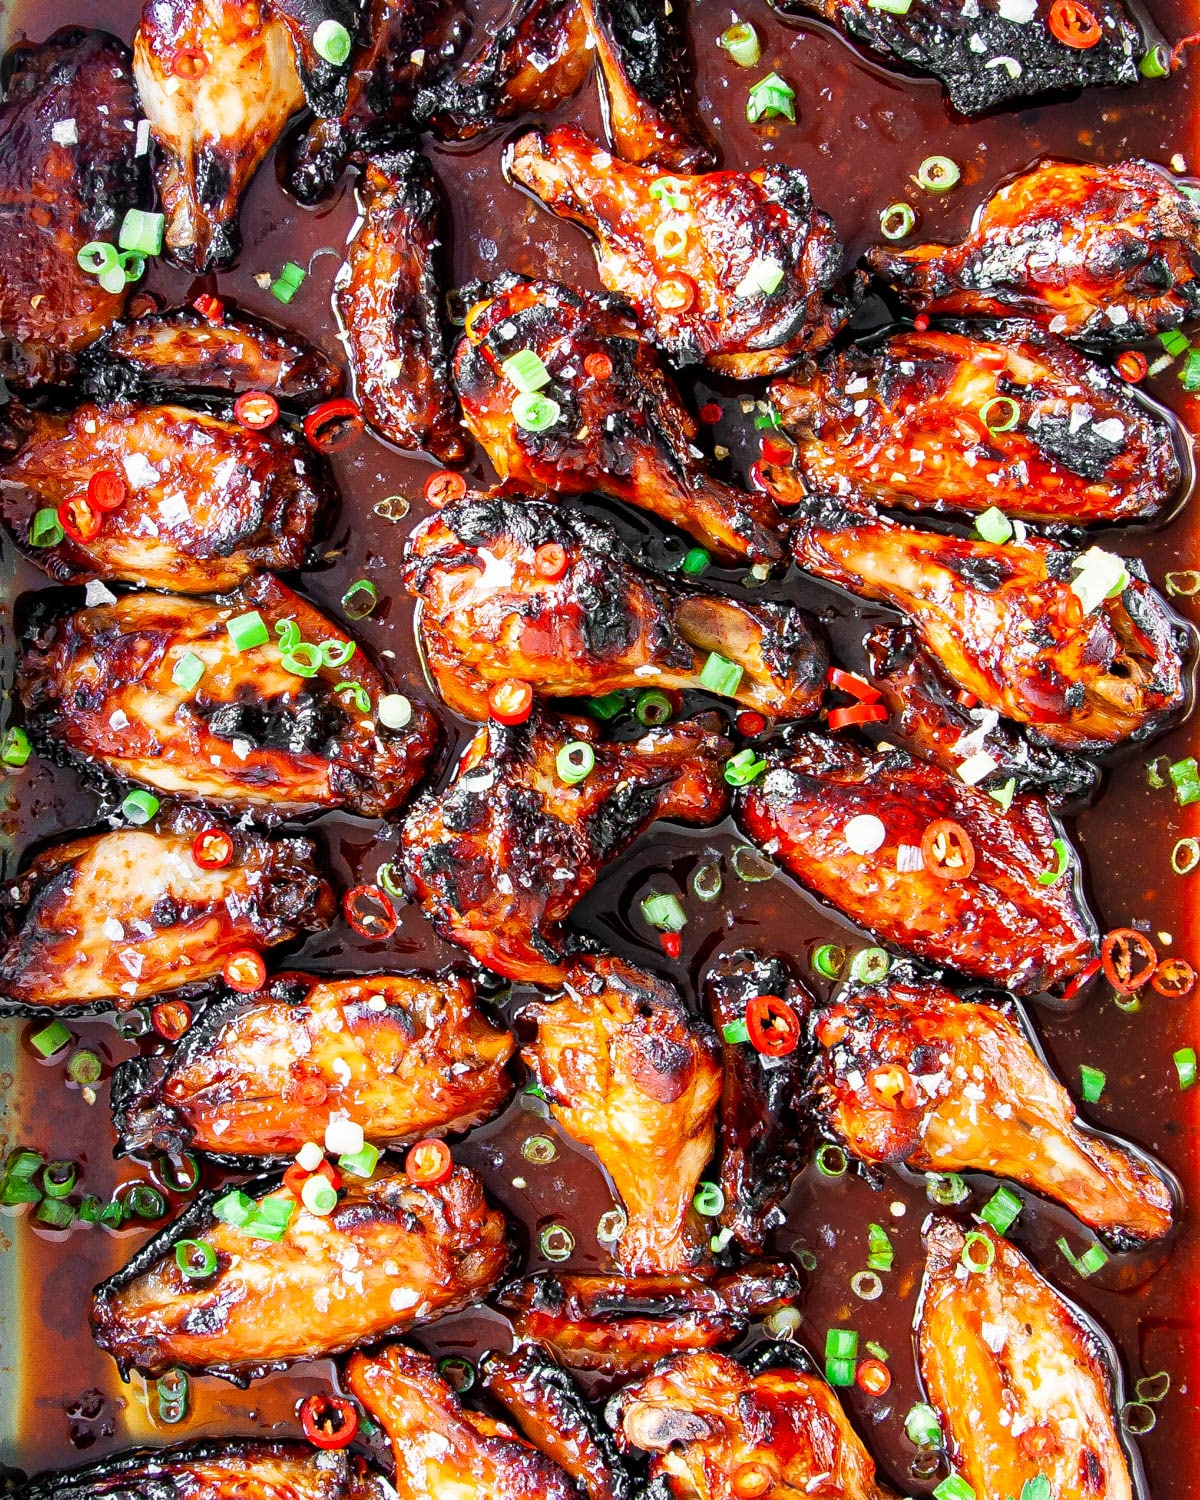 Sticky Honey Soy Chicken Wings Craving Home Cooked